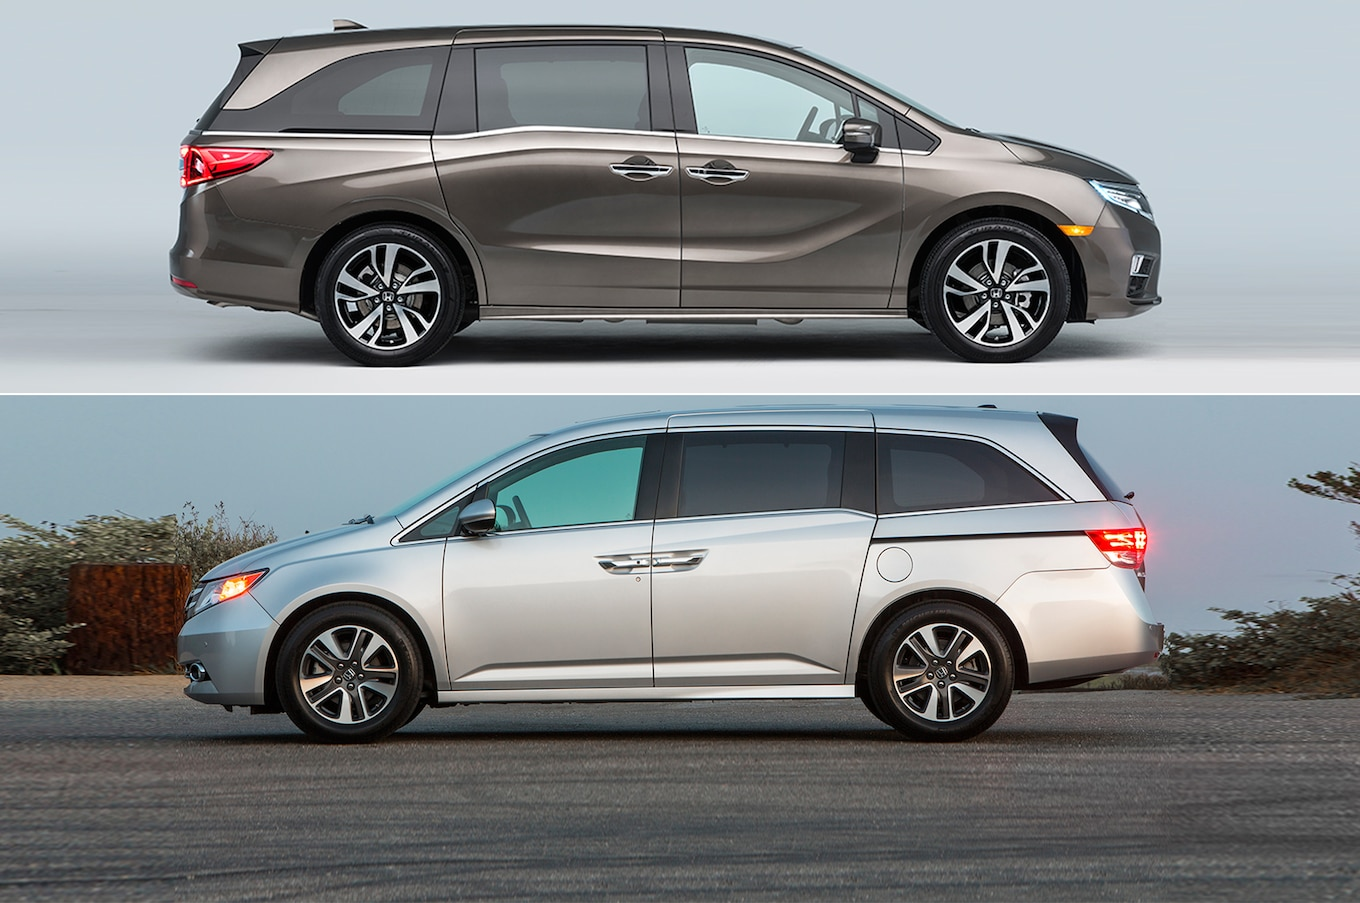 2017 Honda Odyssey Vs 2018 Honda Odyssey Buy Now Or Wait